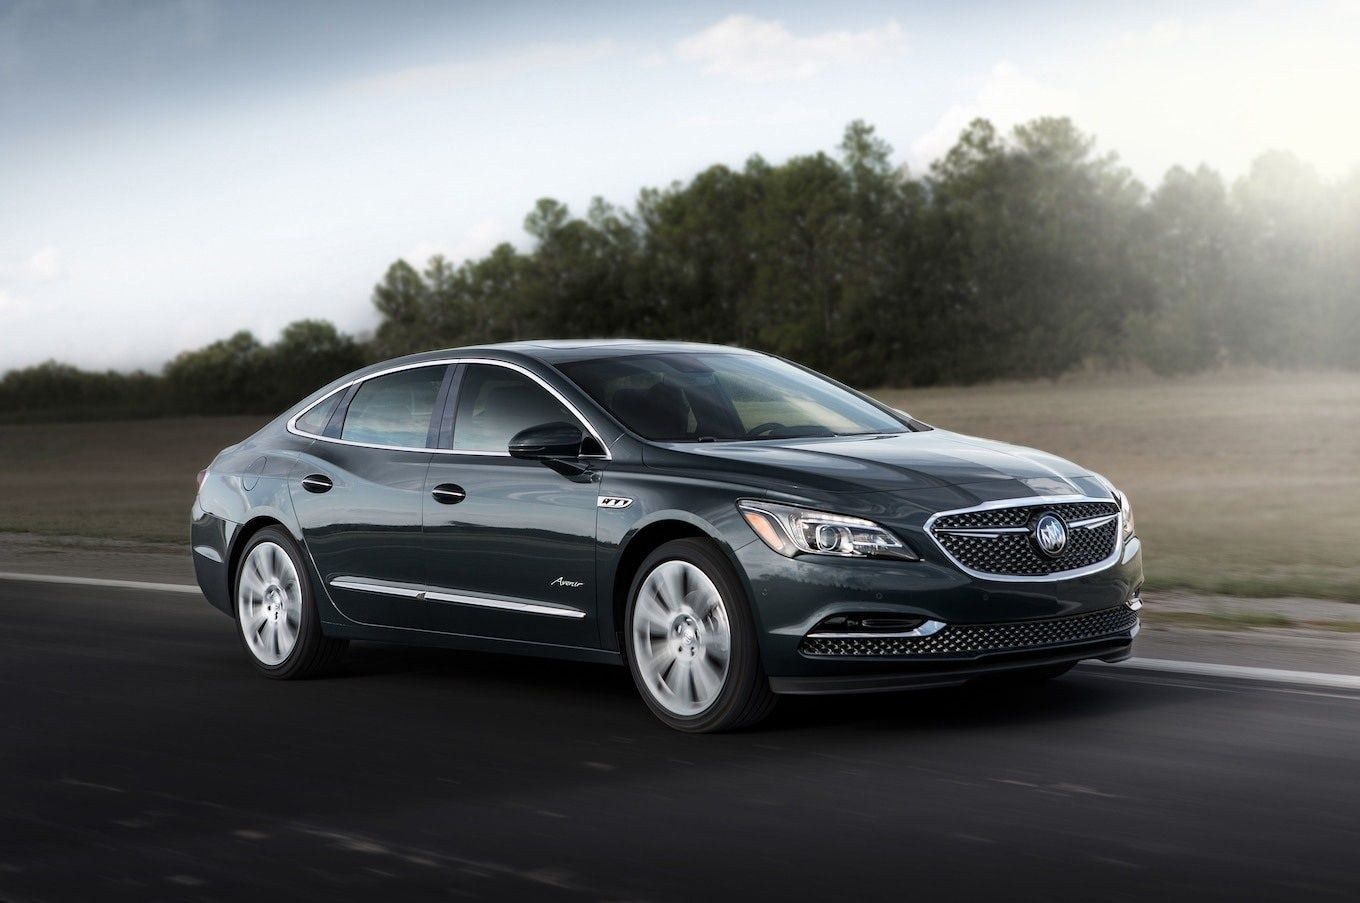 2020 Buick Lesabre Mpg Towing Capacity And Cabin Space Buick Lacrosse